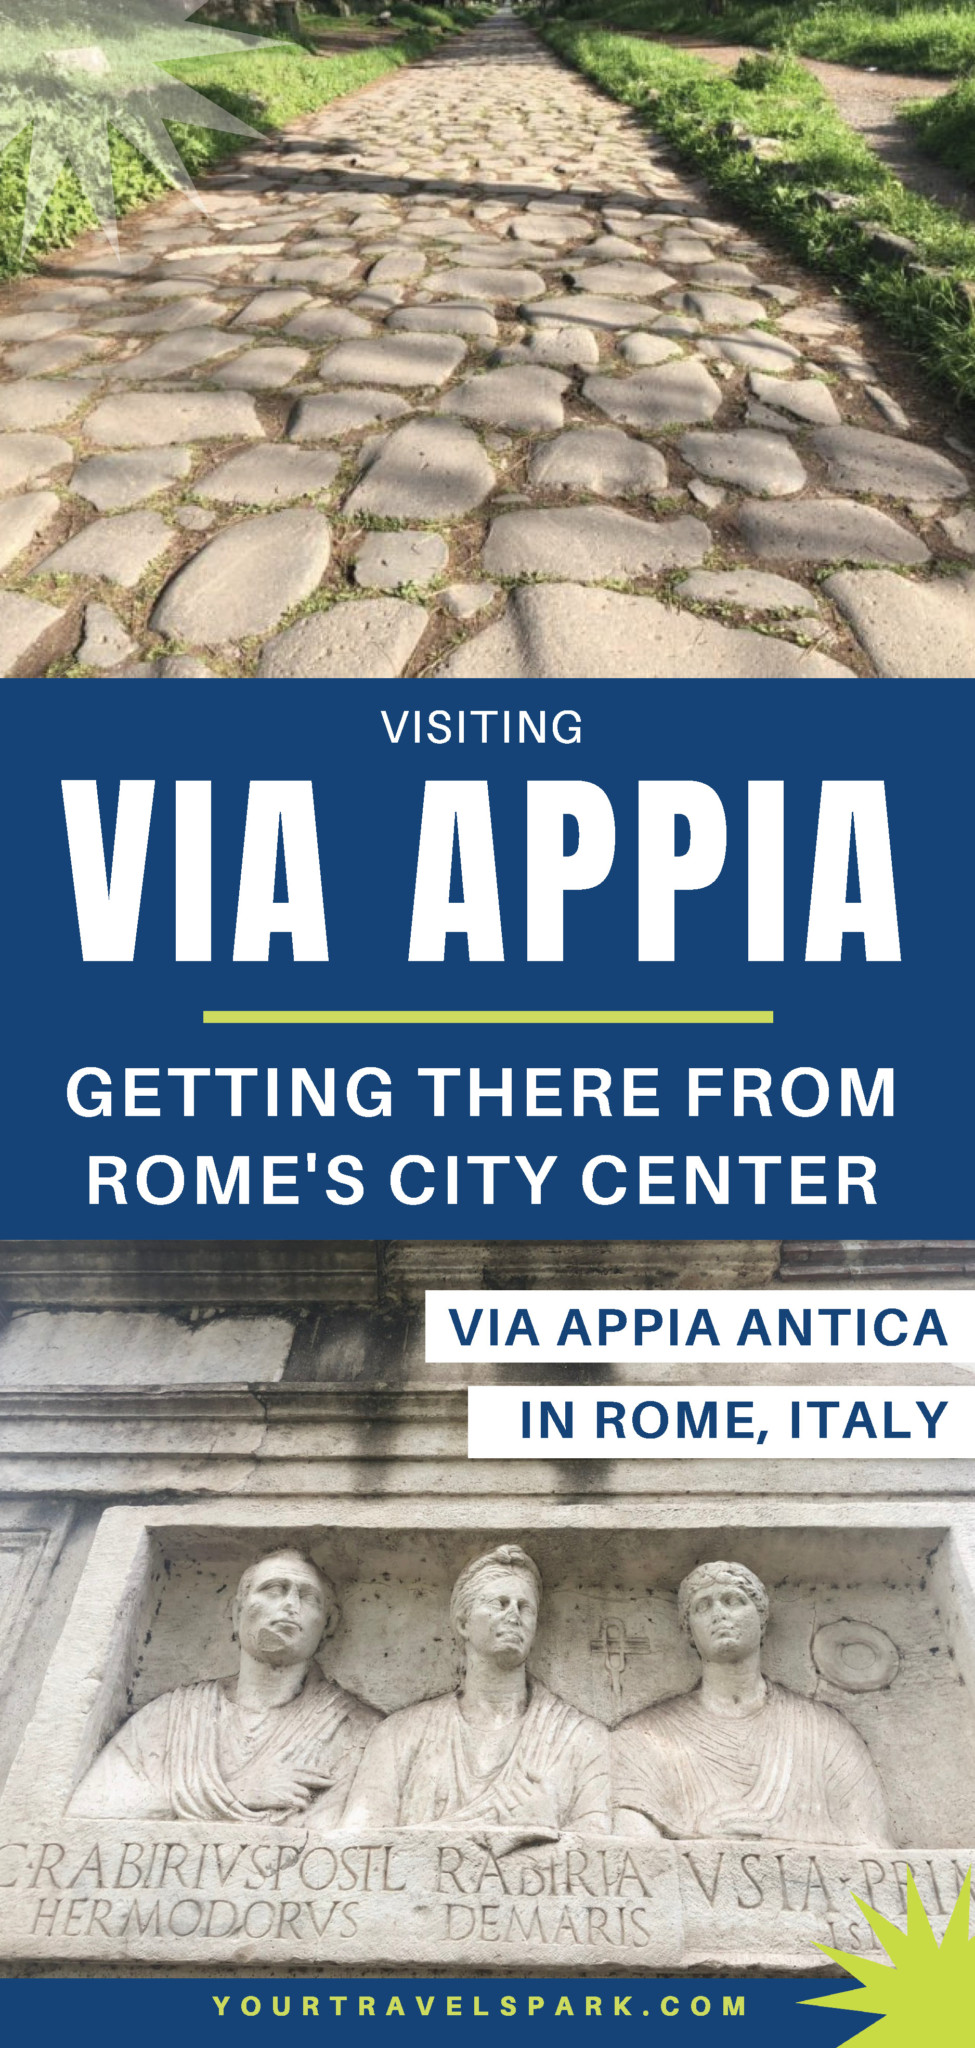 The Appian Way is an important piece of Roman history. Here are our tips on how to get to Via Appia Antica from Rome Italy's city center. #viaappia #viaappiaantica #appianway #theappianway #rome #romeitaly #roma #romaitaly #romaitalia #italia